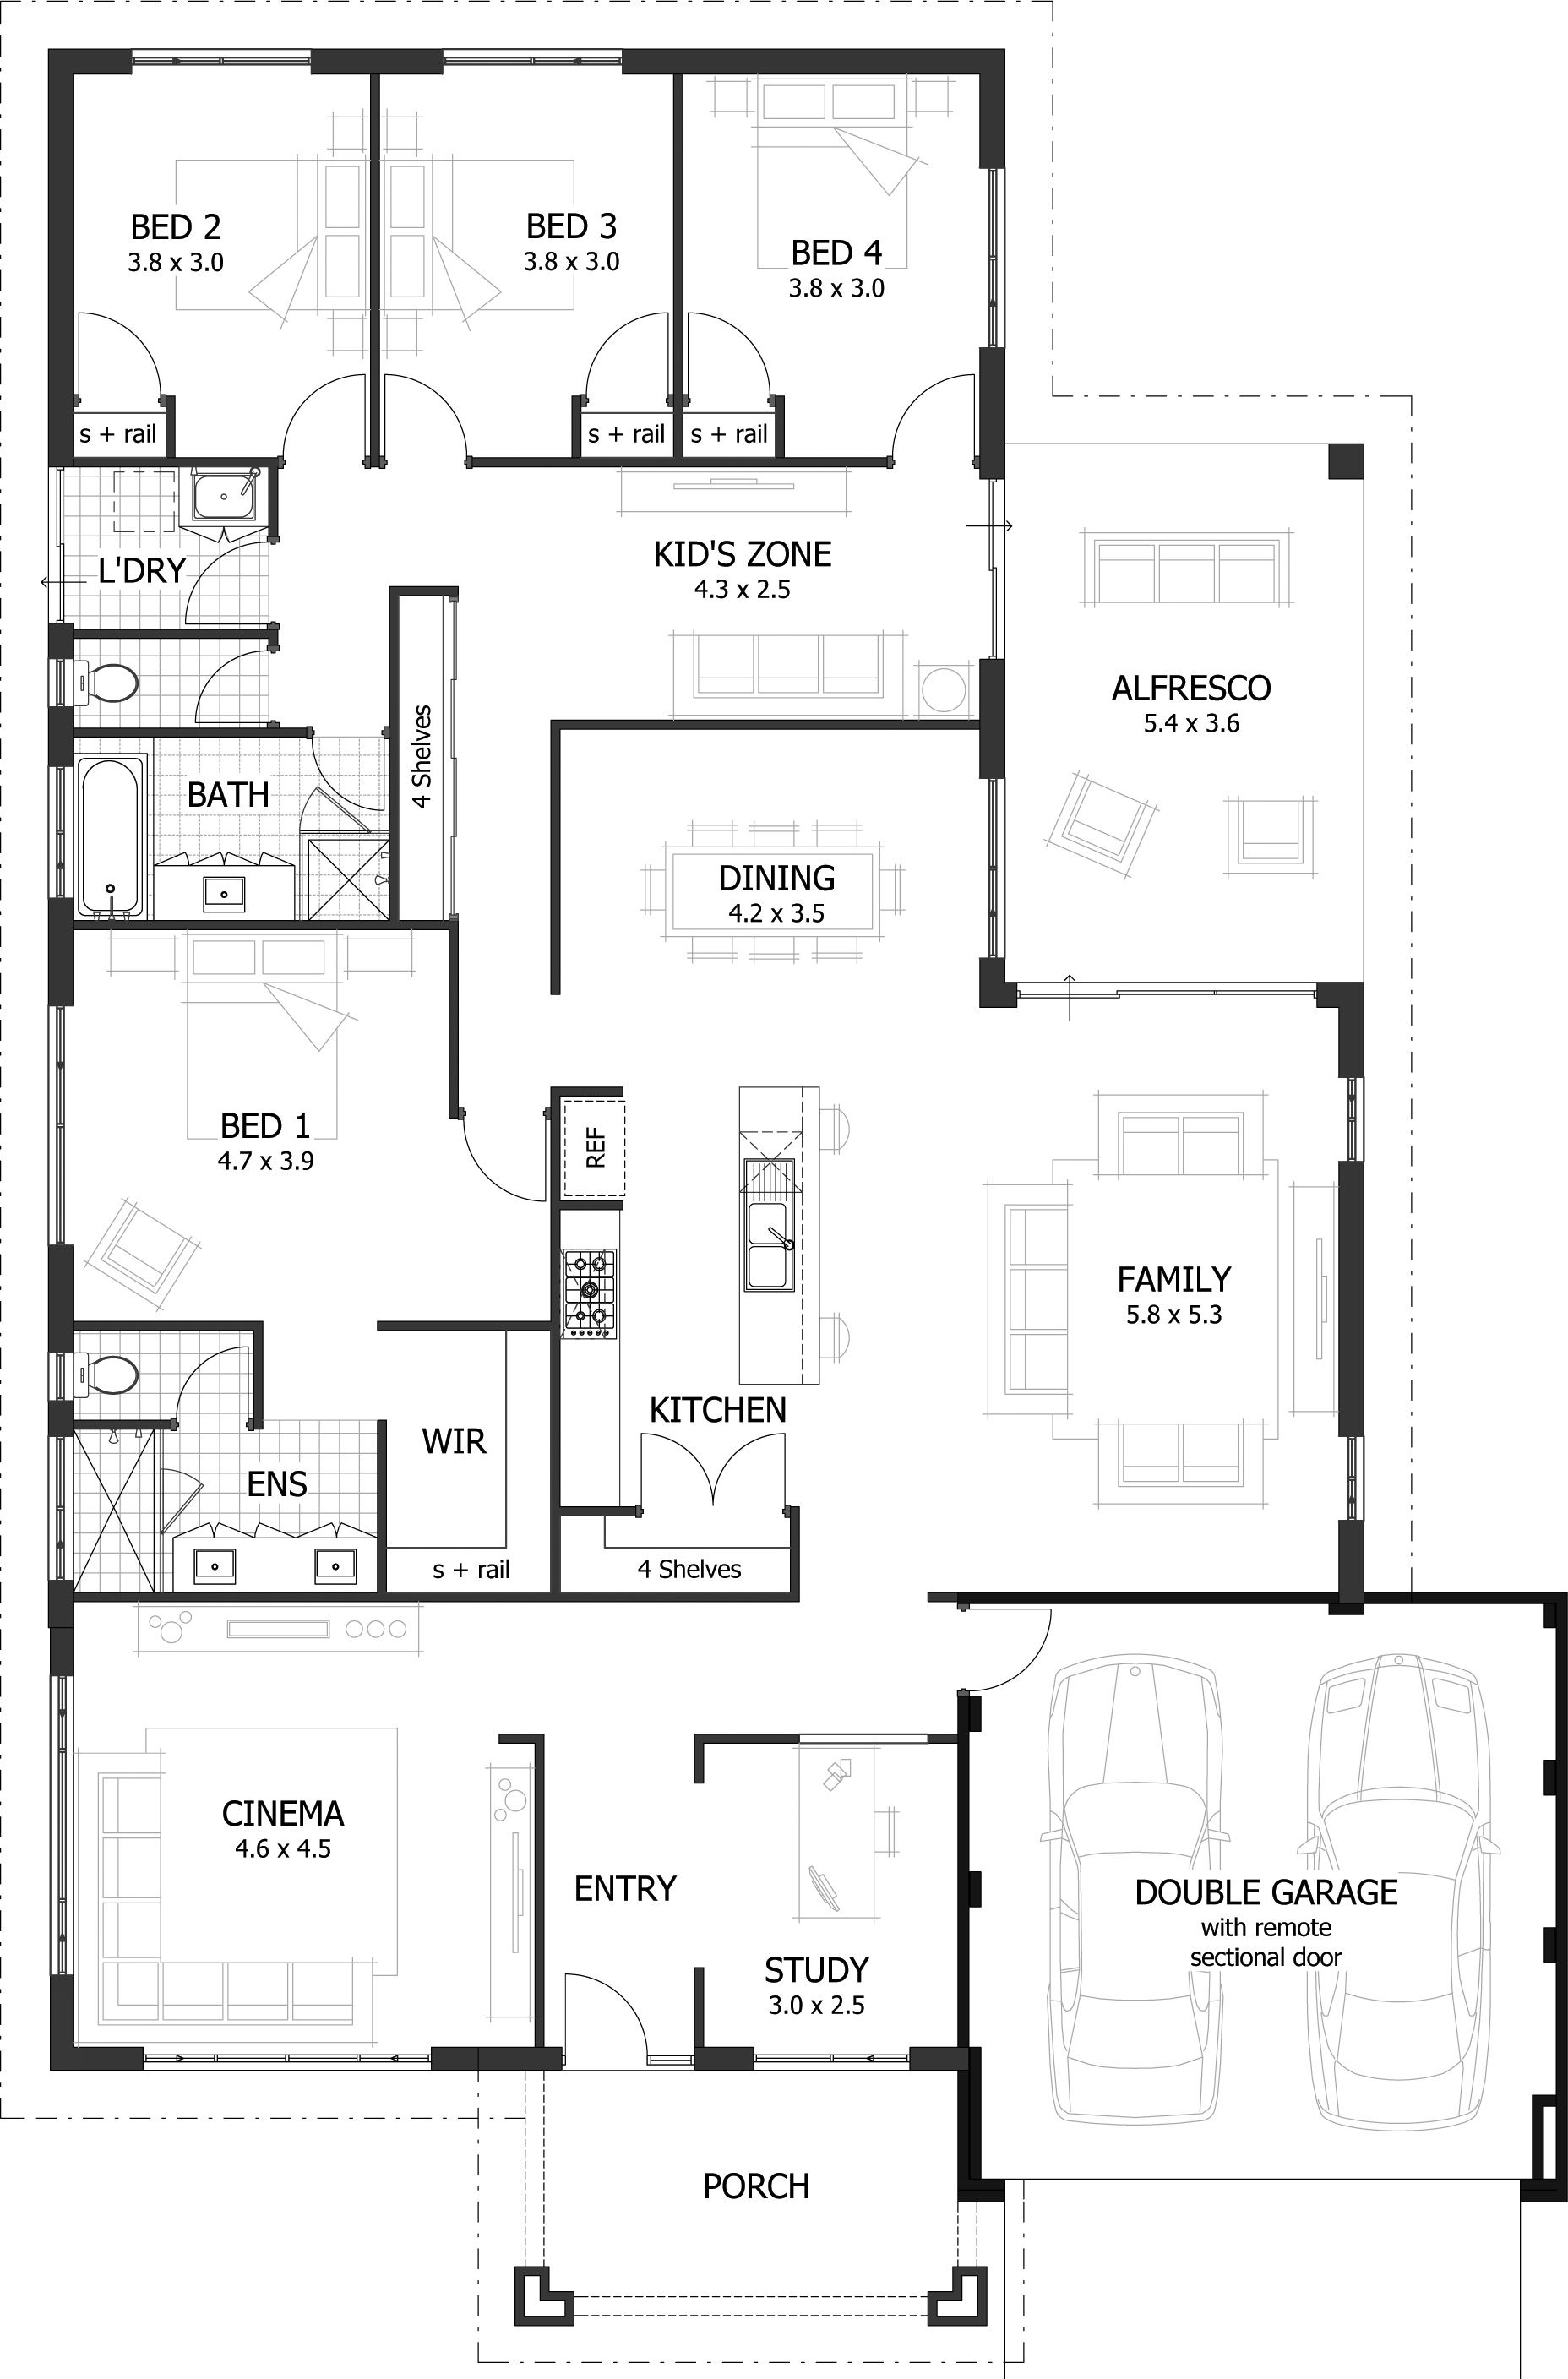 Home Designs Celebration Homes 4 Bedroom House Plans 5 Bedroom House Plans Bedroom House Plans